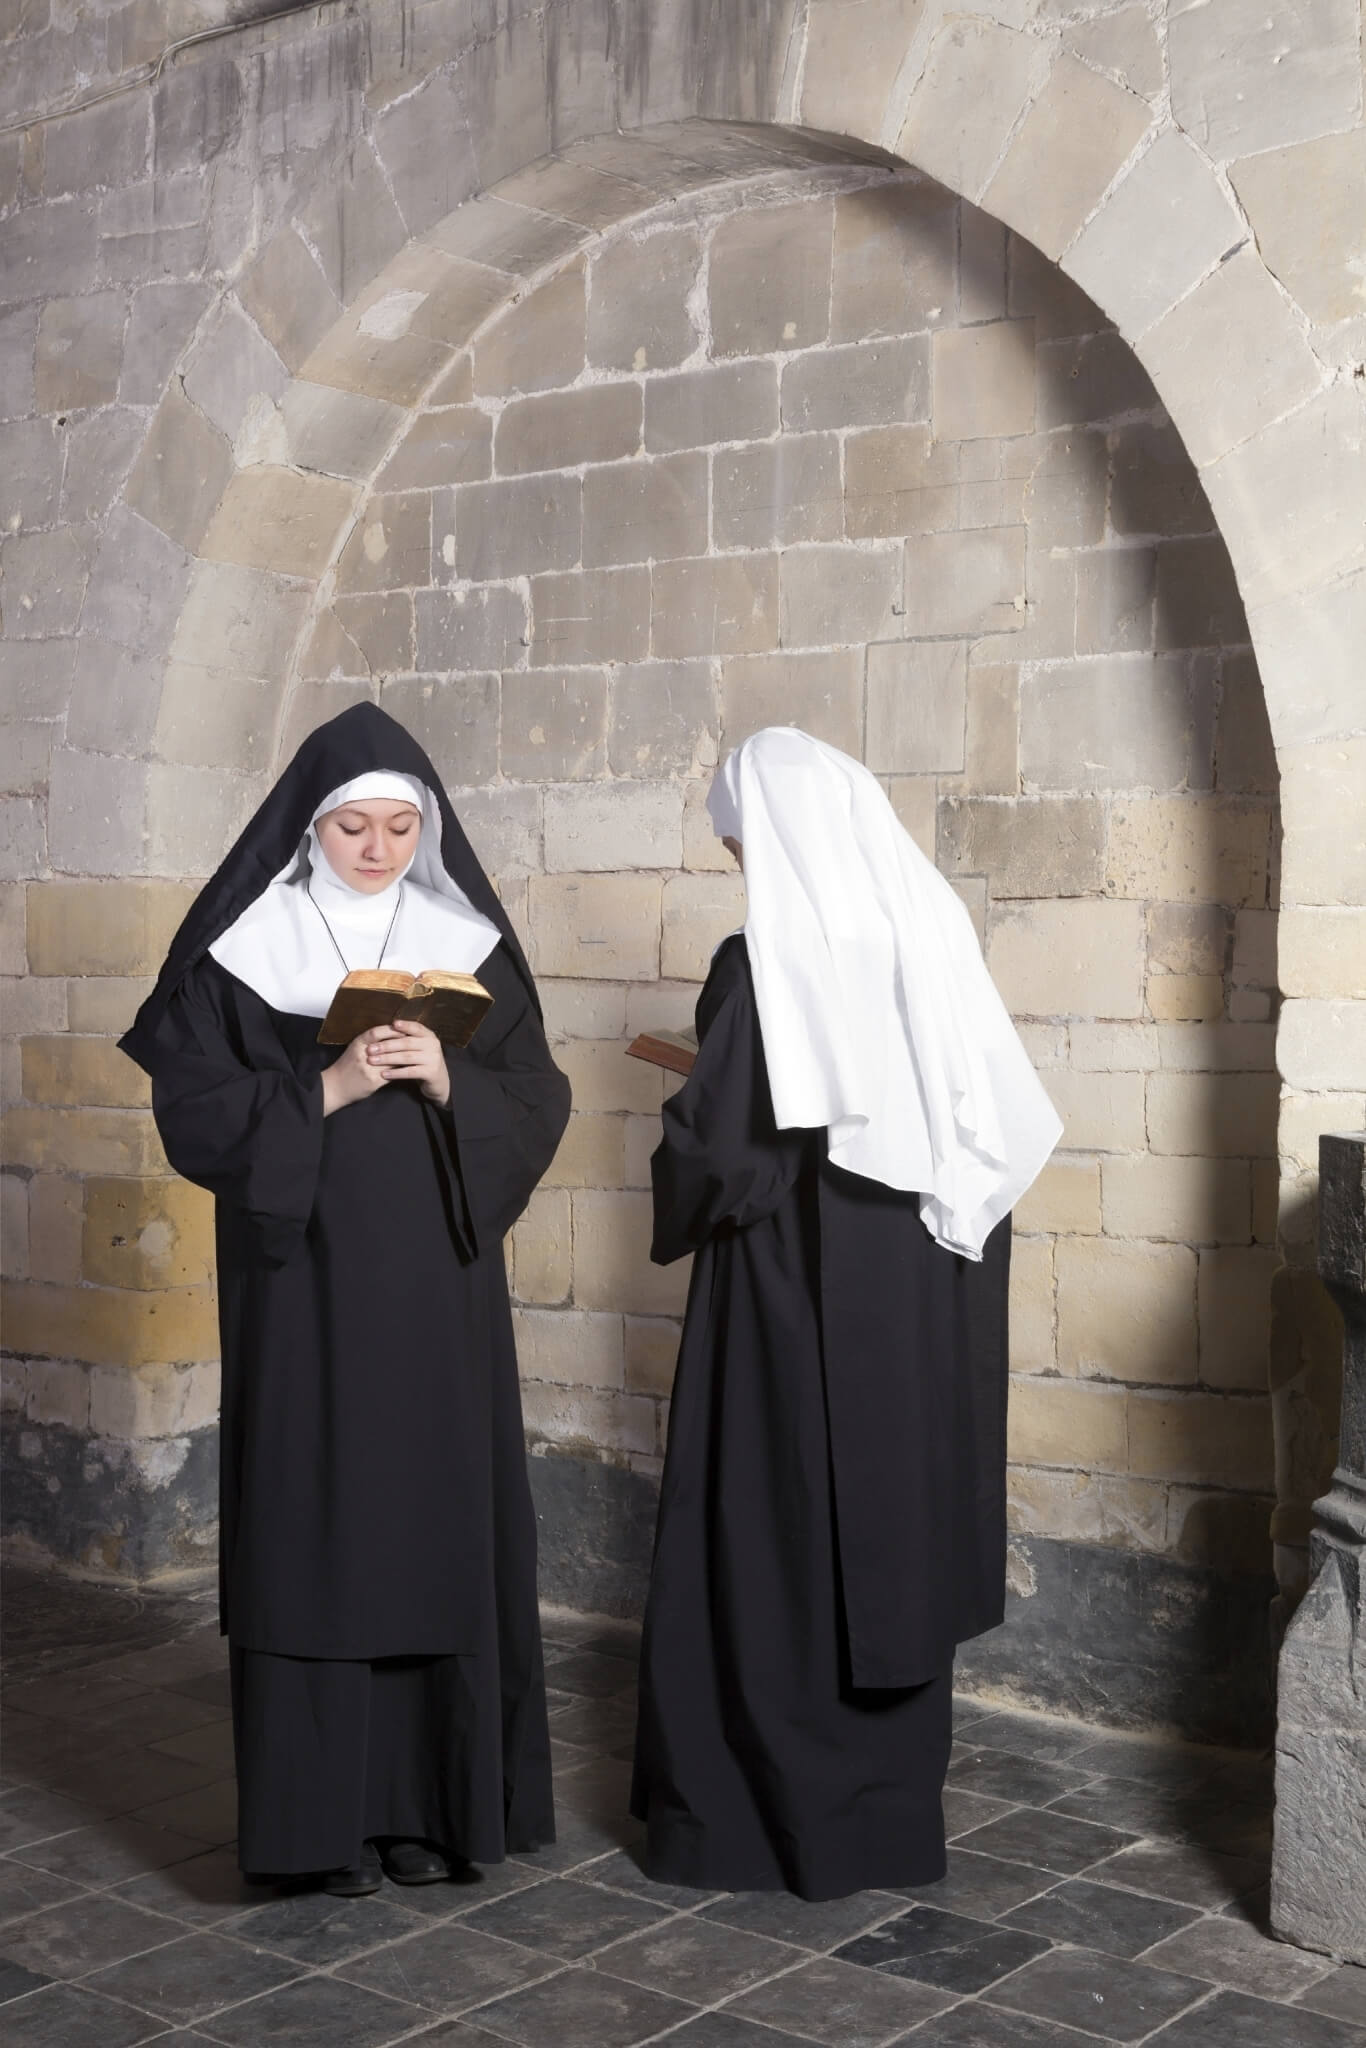 Two-nuns-in-an-old-convent-000033422432_Full.jpg.jpeg